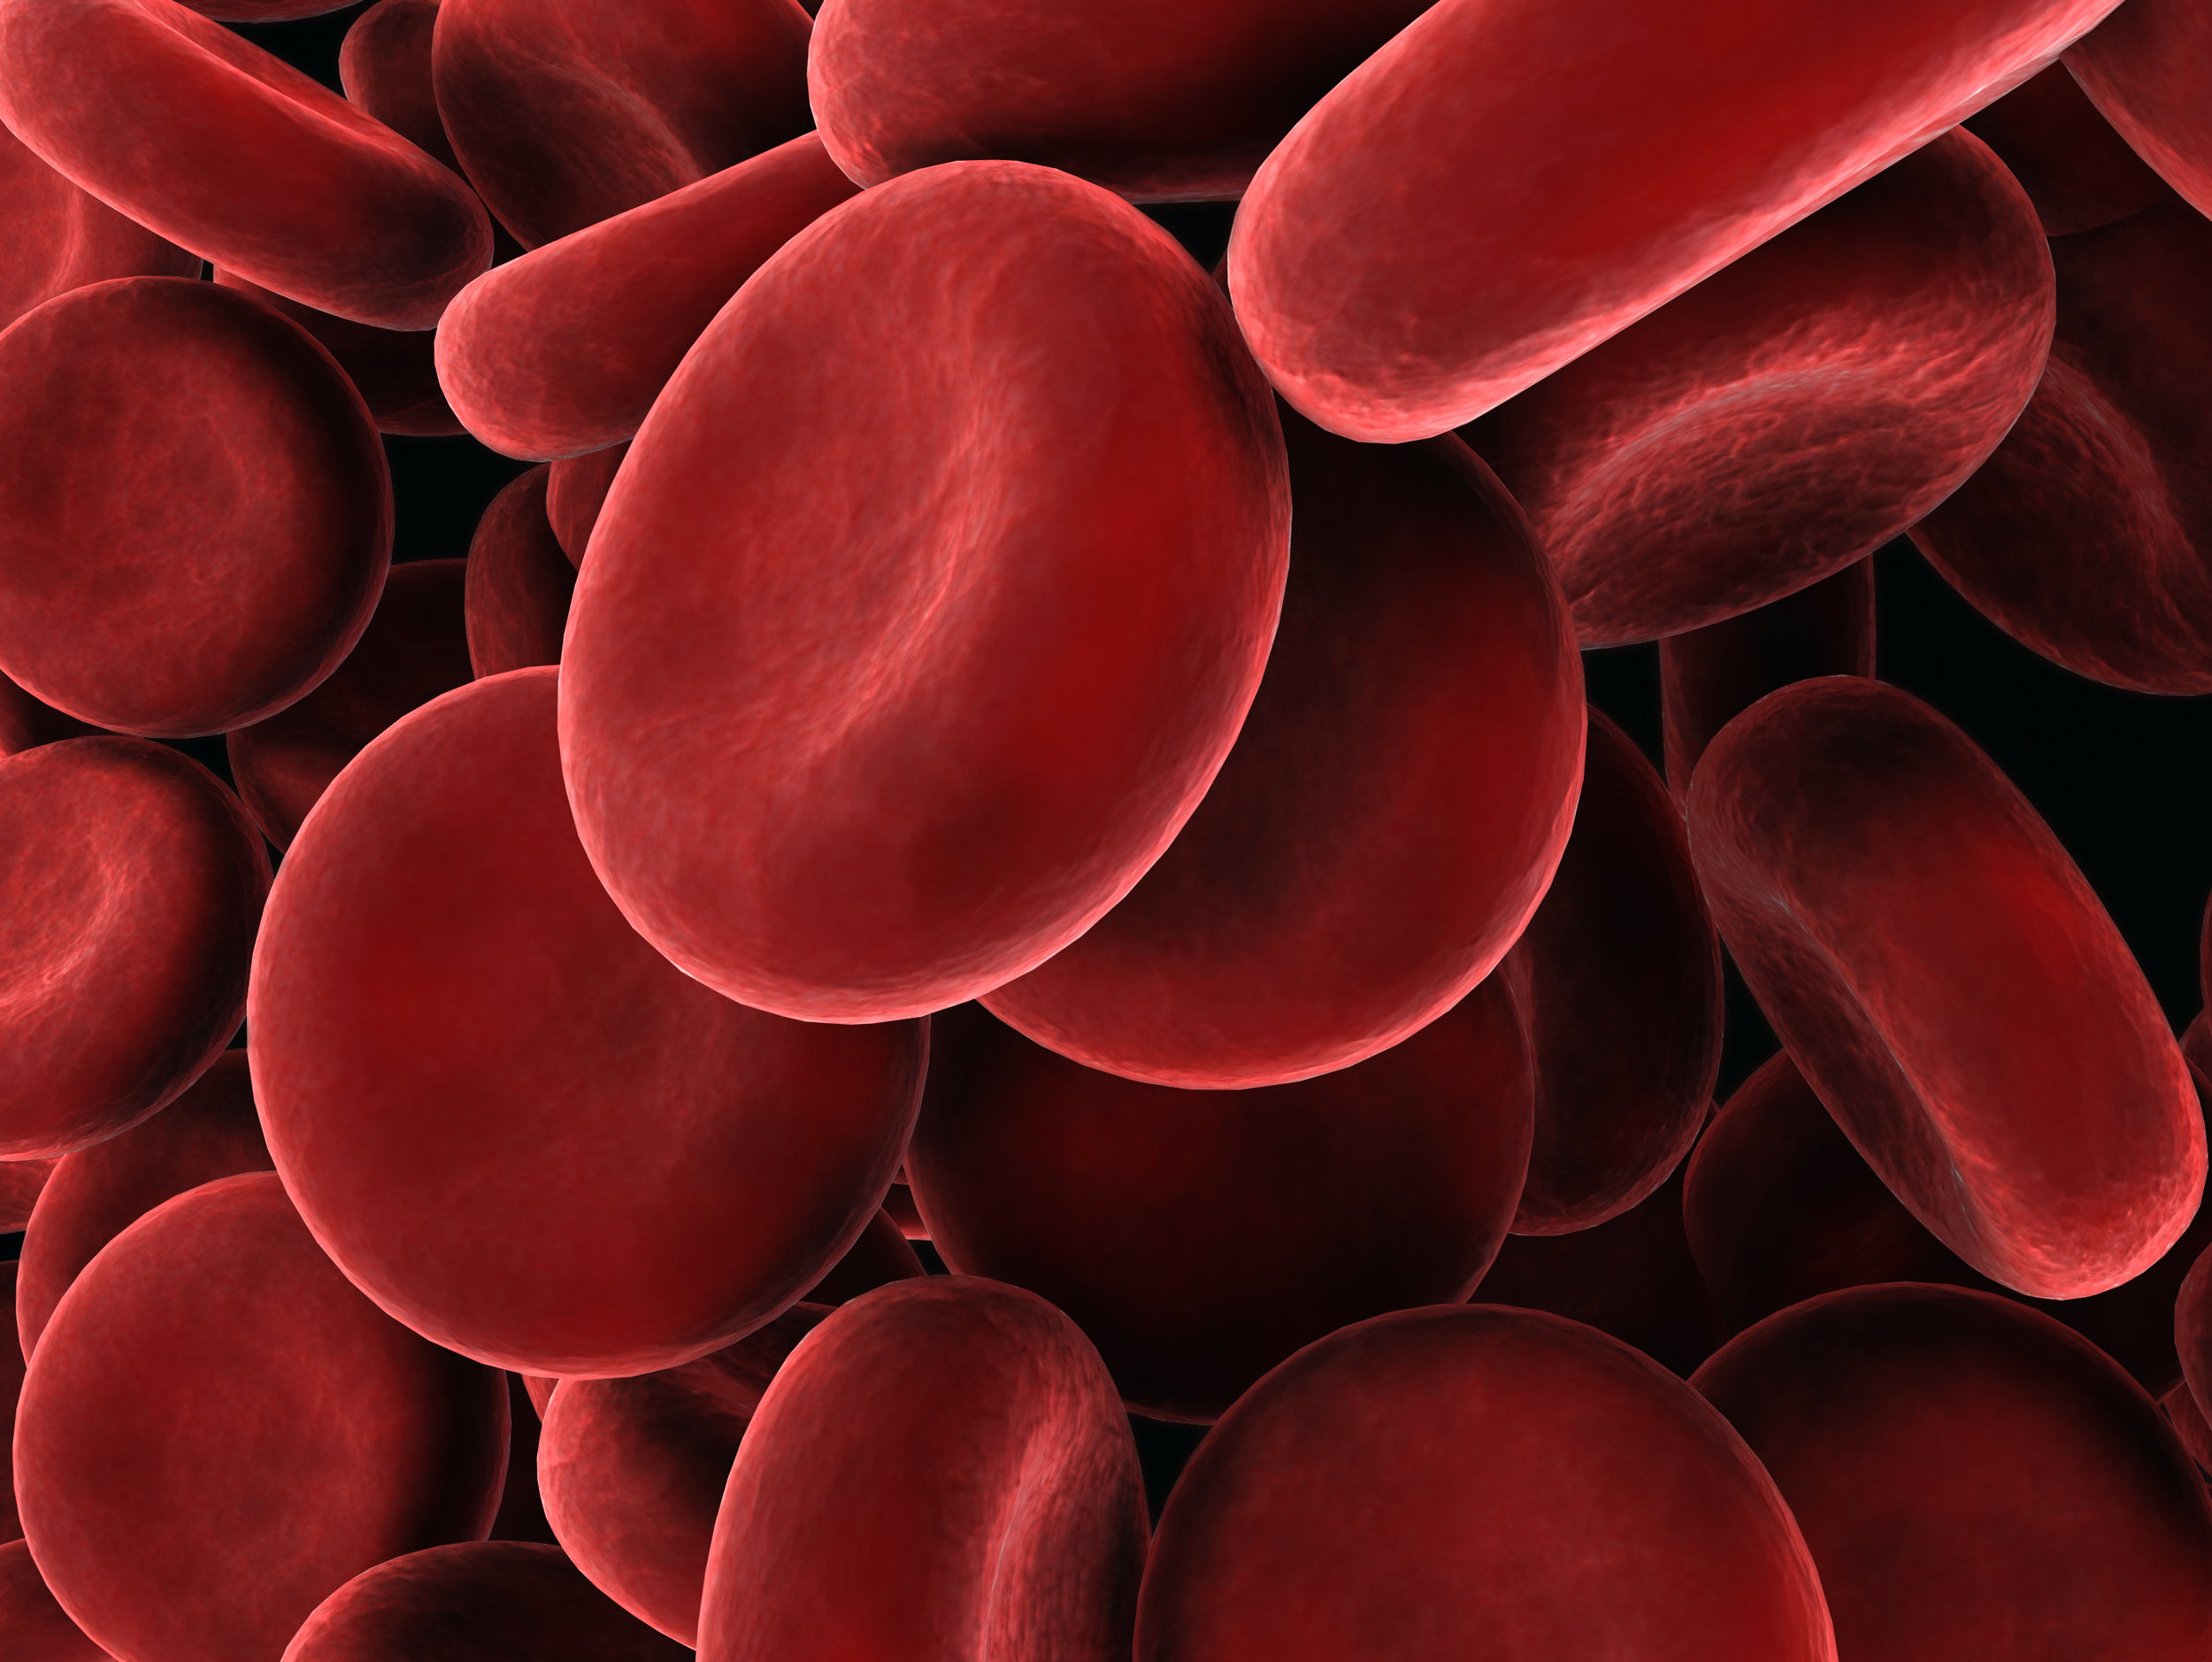 red blood cells photo.jpg